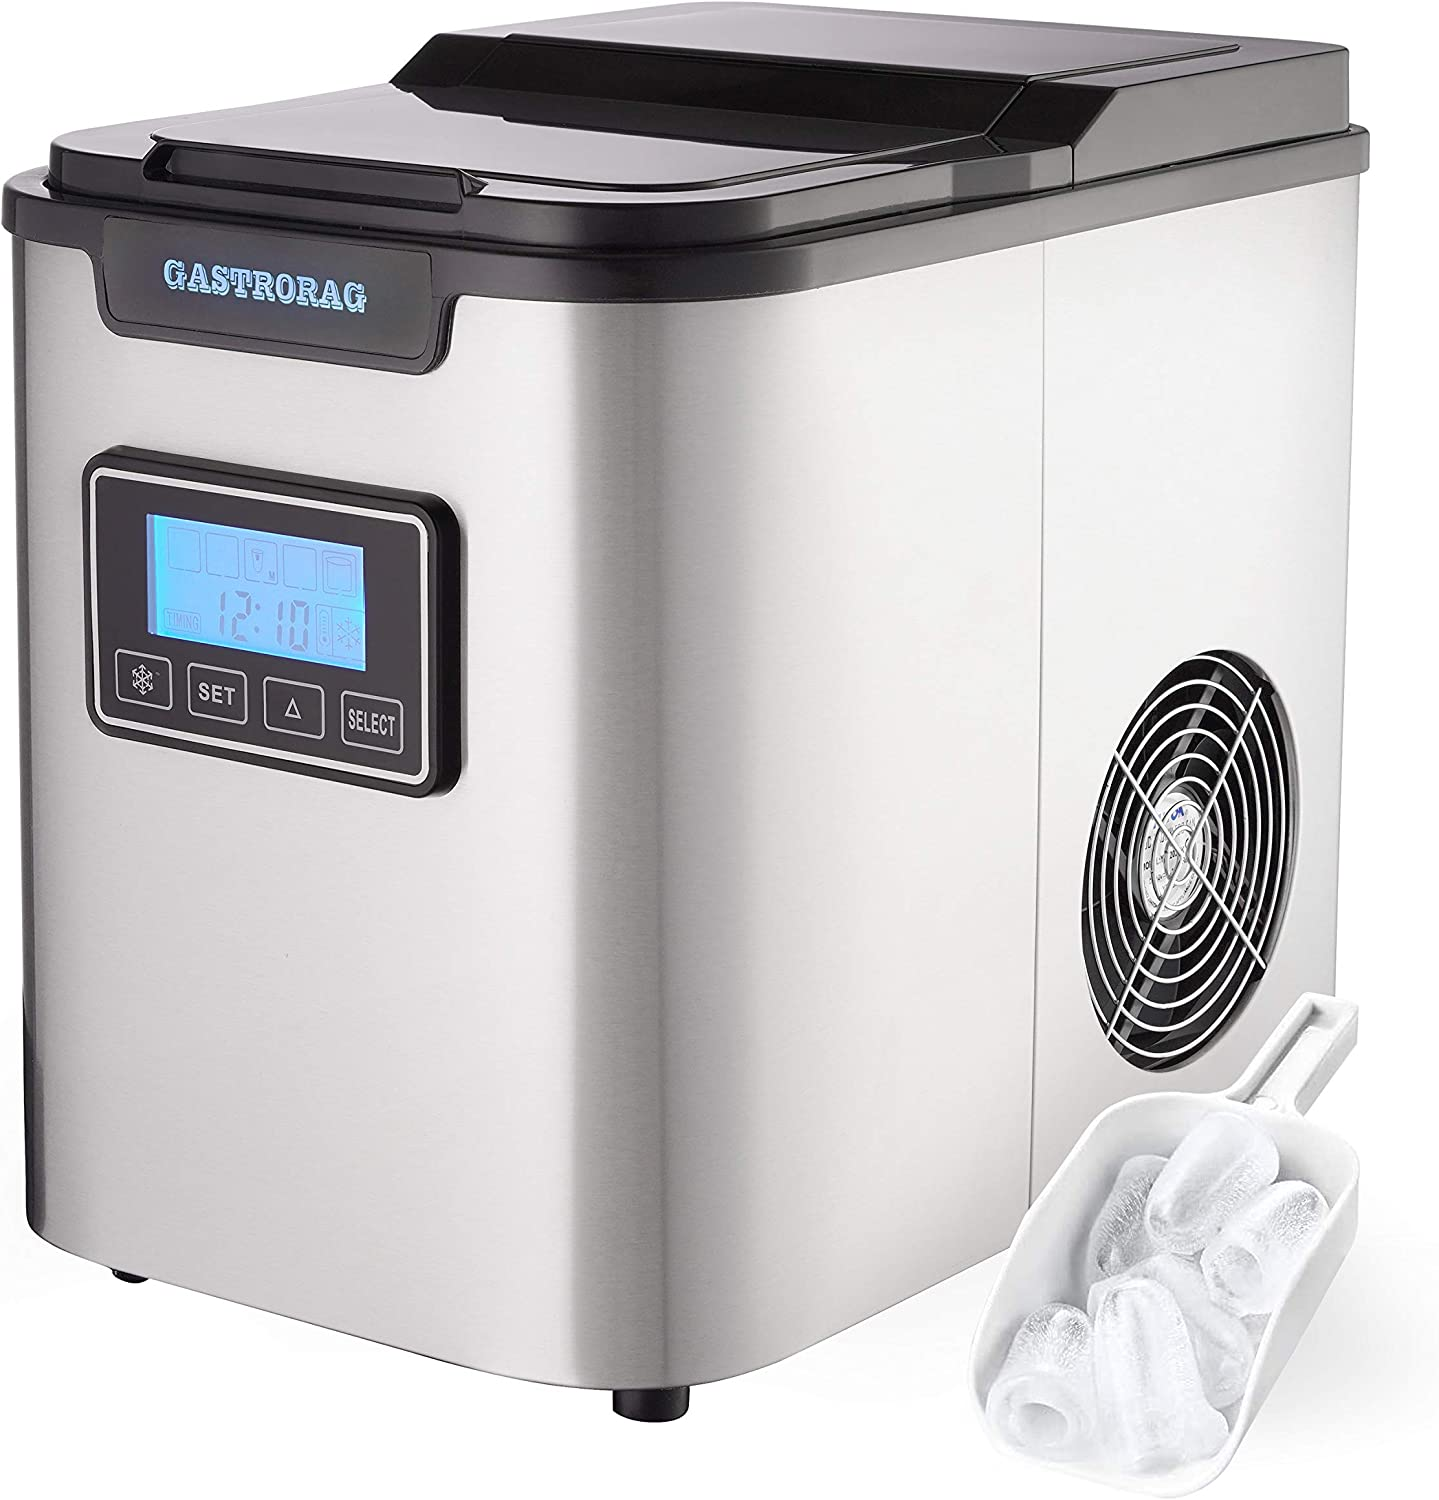 Gastrorag Large Capacity Stainless Steel Automatic Portable Electric Countertop Ice Maker Machine 26lbs 24h 9 Cubes Ready In 10 Minutes 3 Types Of Ice Size With Scoop And Basket Appliances